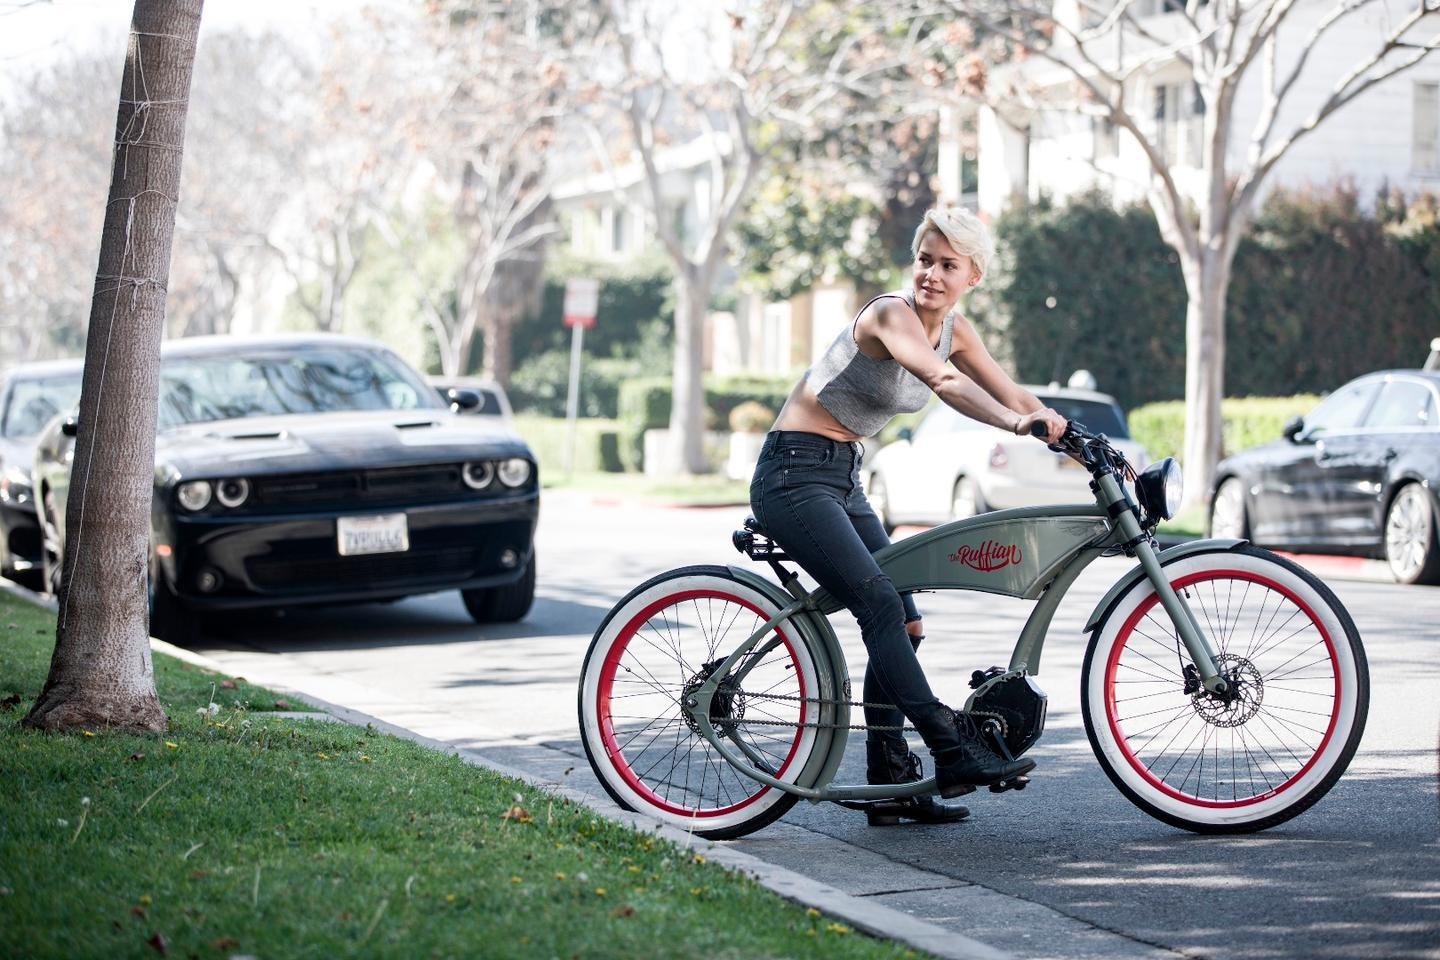 The Ruffian e-bike is available in three different colors